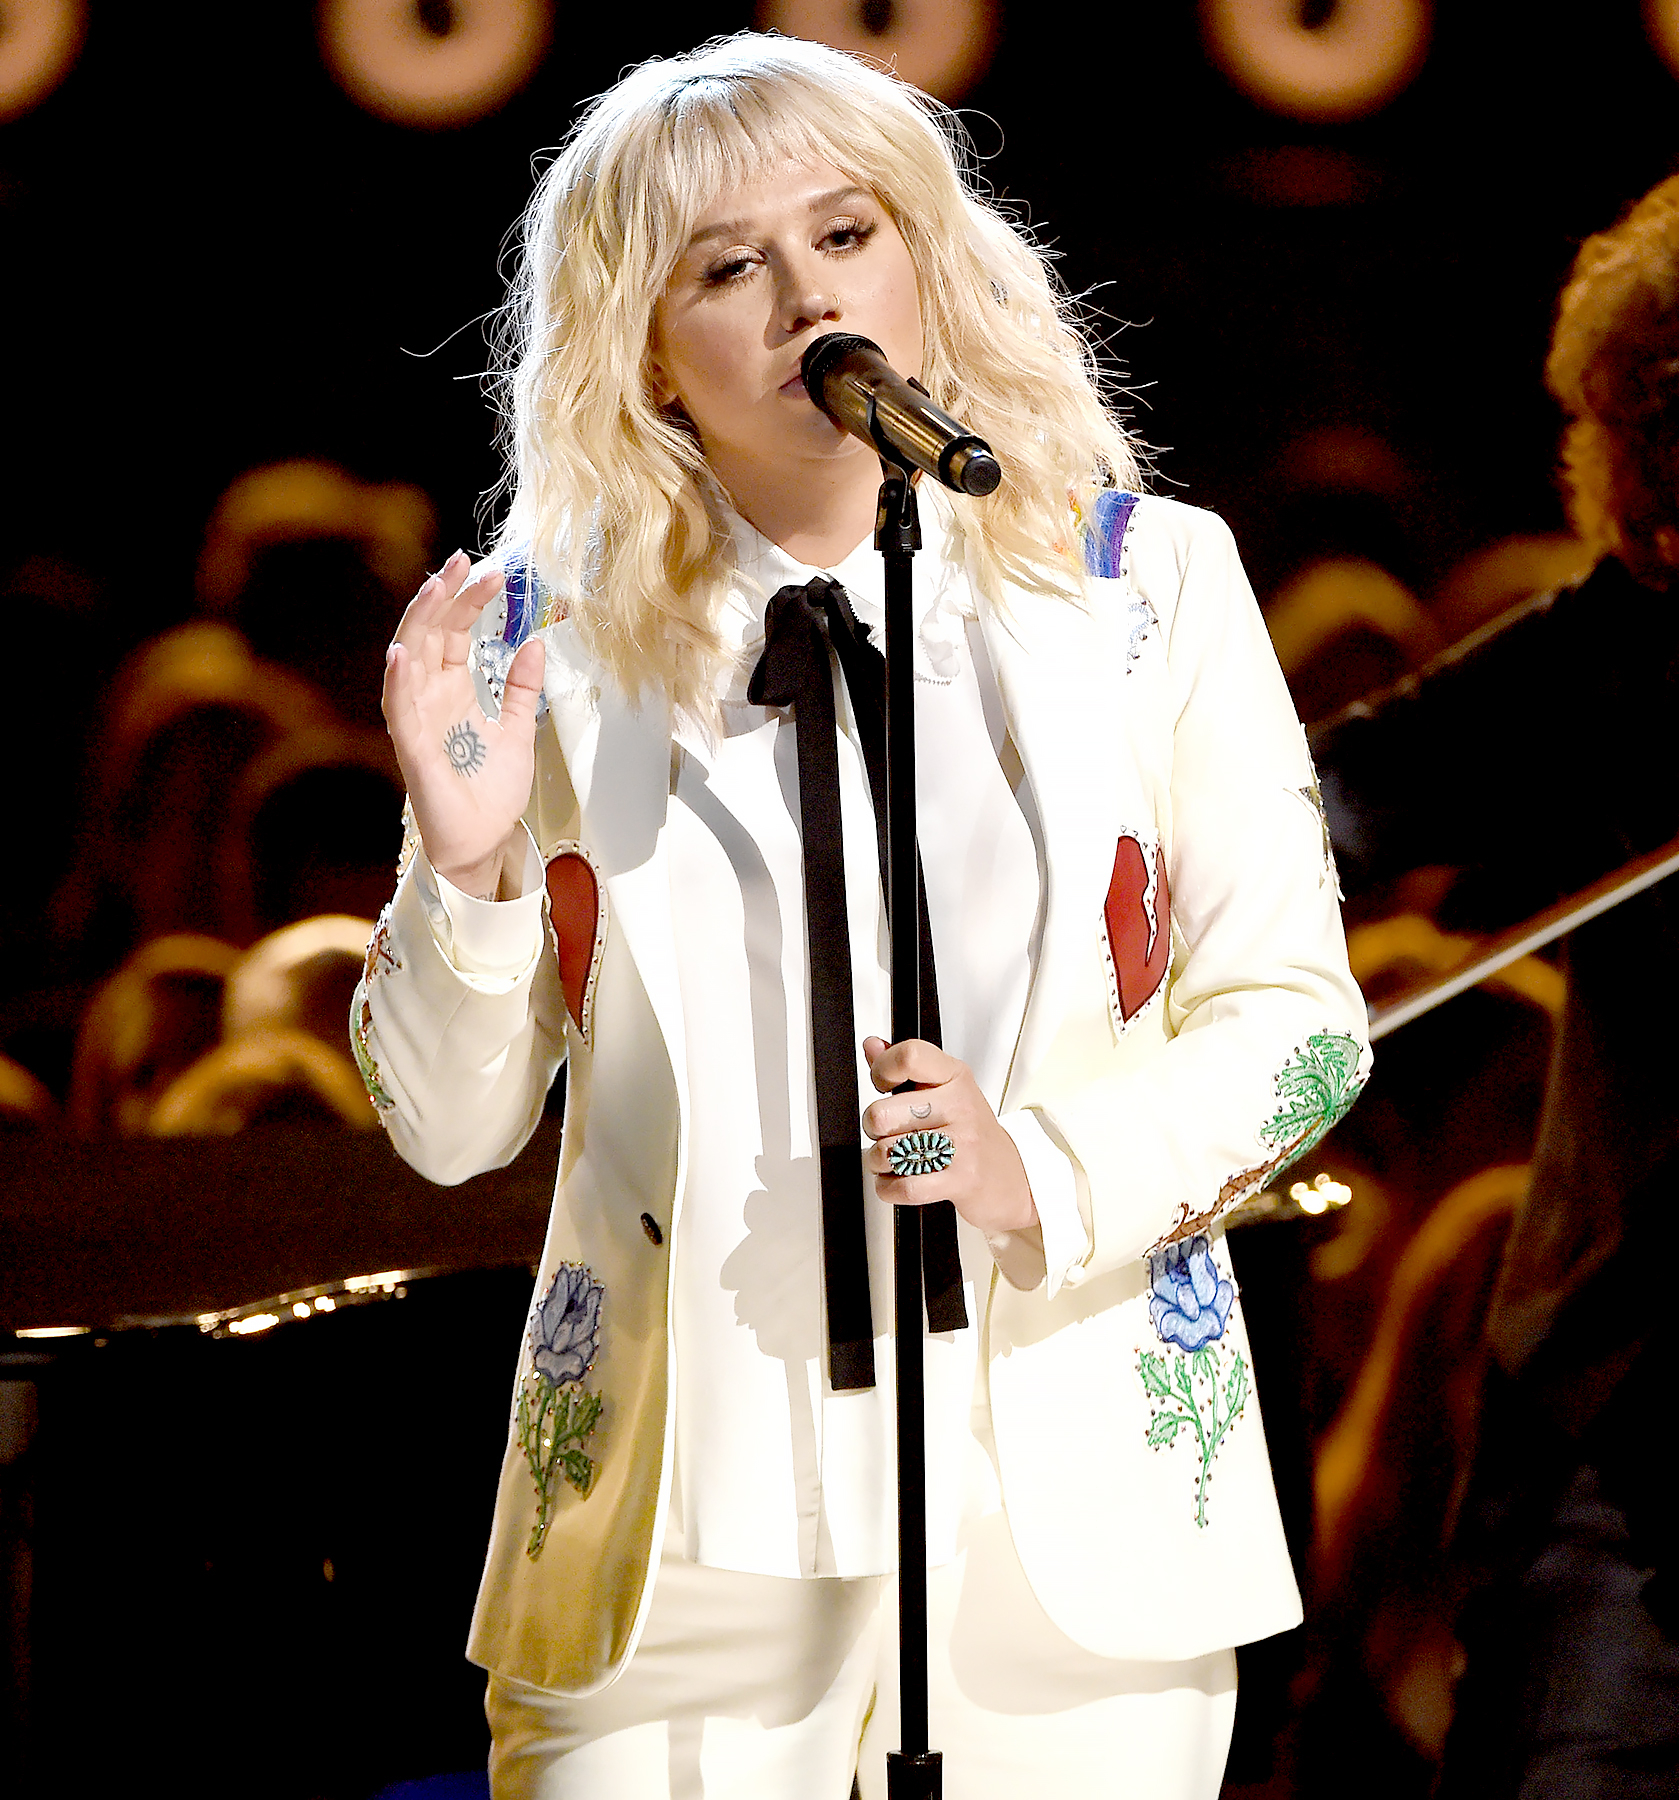 Kesha performs onstage during the 2016 Billboard Music Awards at T-Mobile Arena on May 22, 2016 in Las Vegas, Nevada.